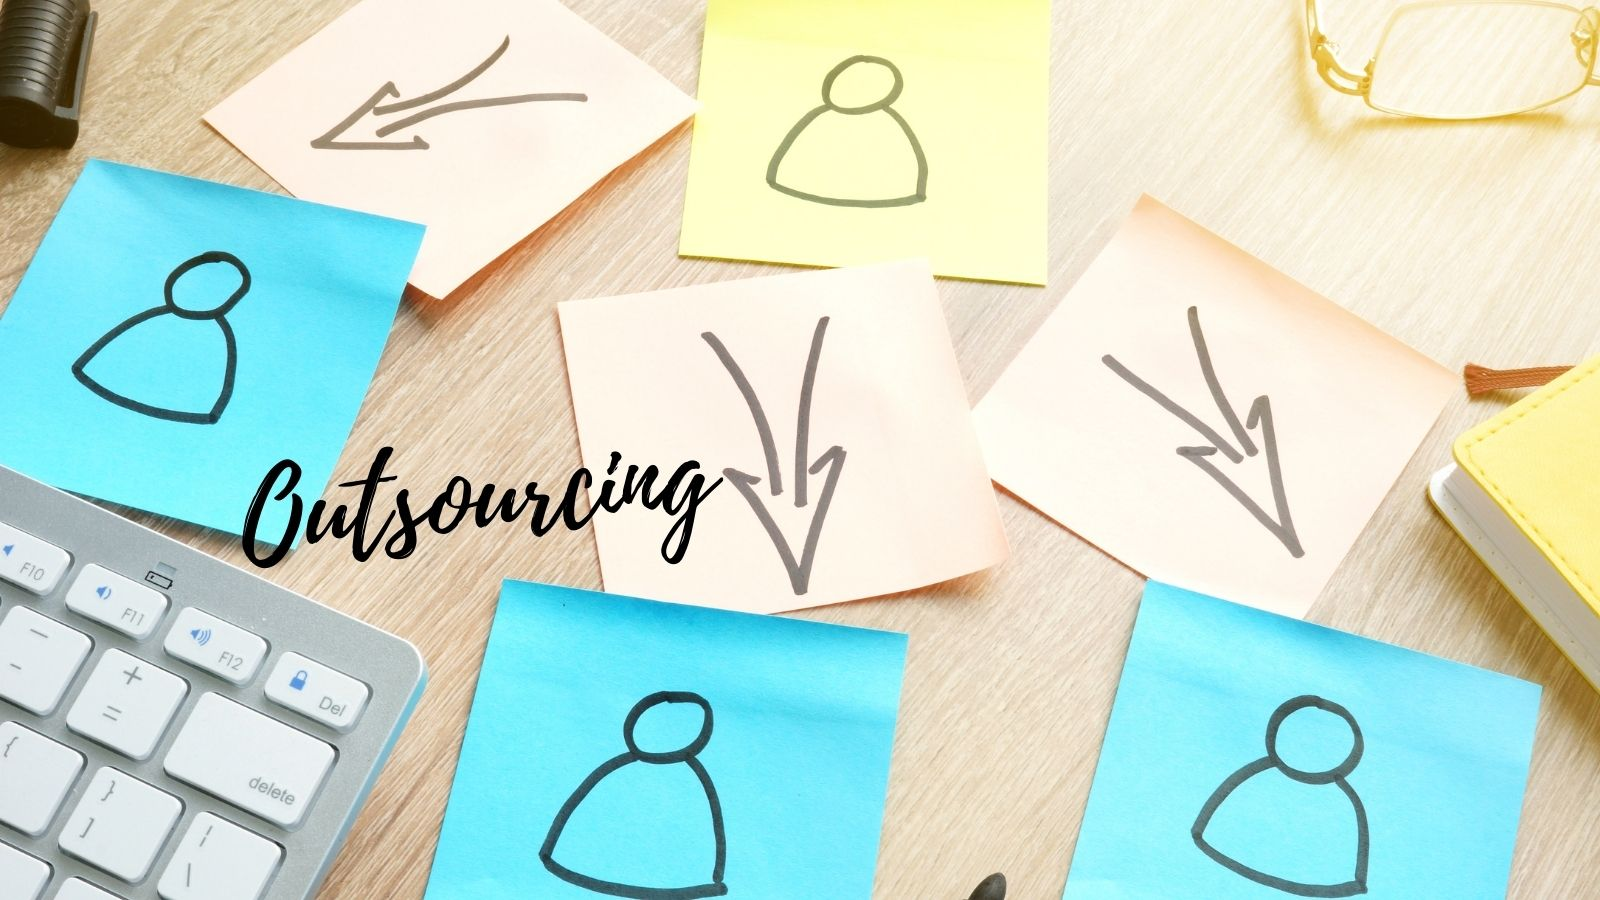 Small Business Owners Should Outsource